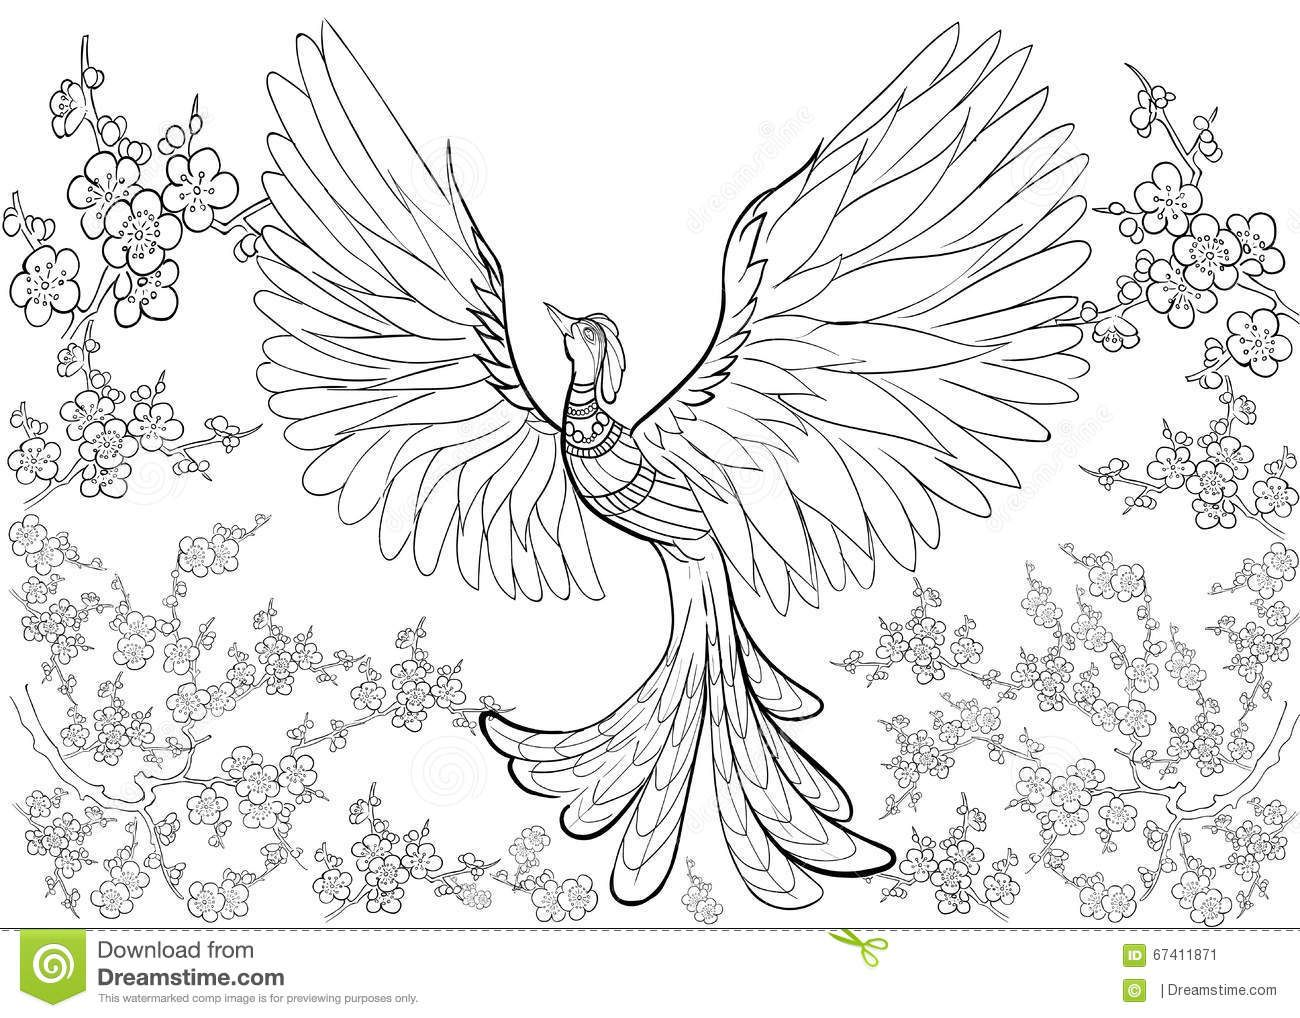 Coloring pages relaxing - Coloring Book Coloring For Adult Page For Coloring Book Very Interesting And Relaxing